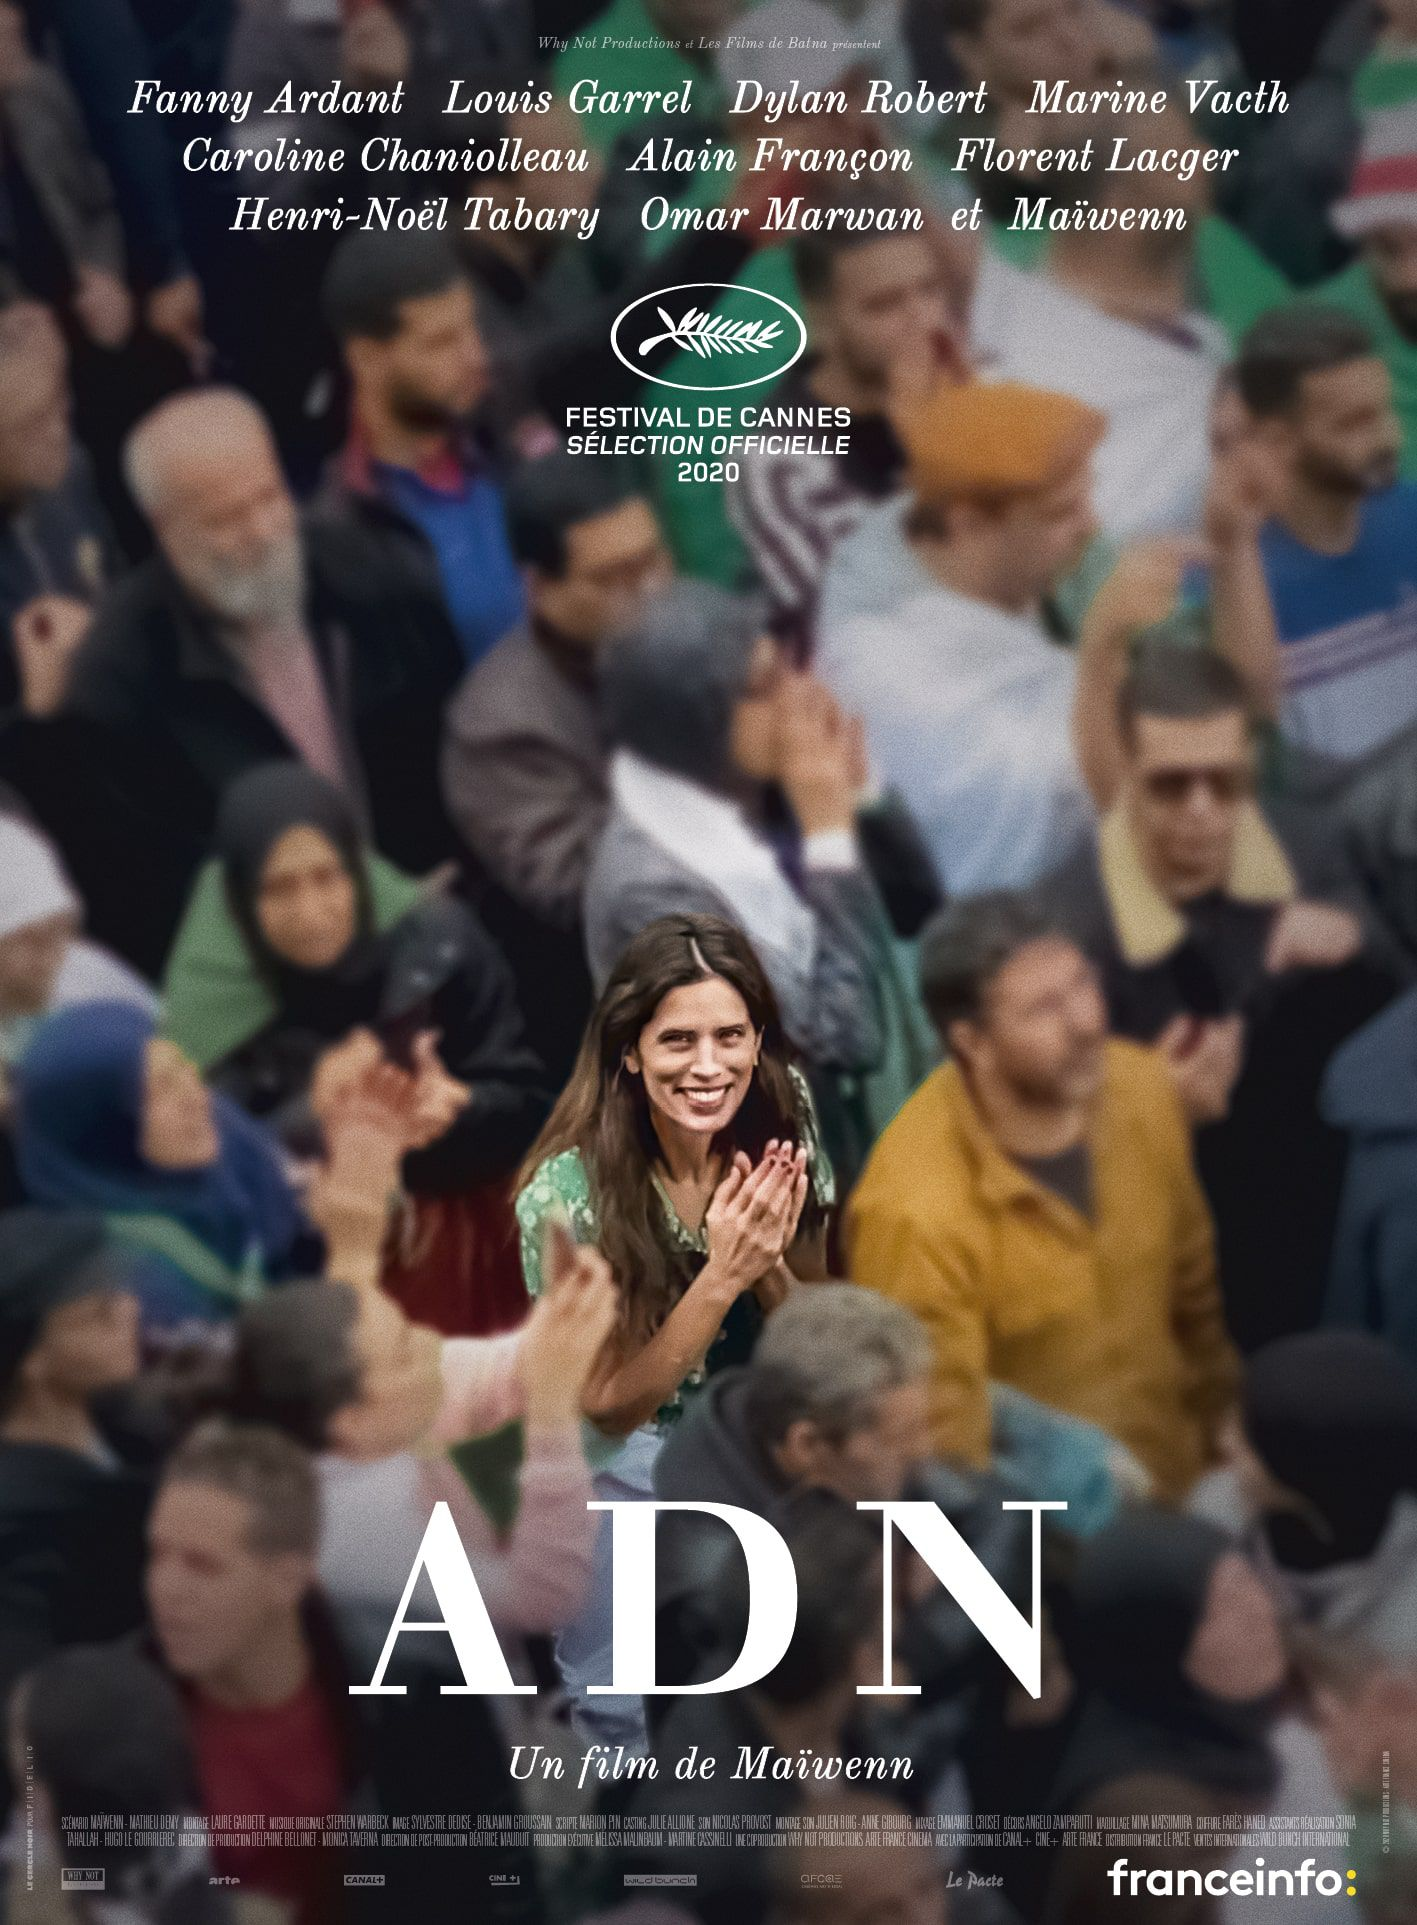 ADN - Film (2020) streaming VF gratuit complet